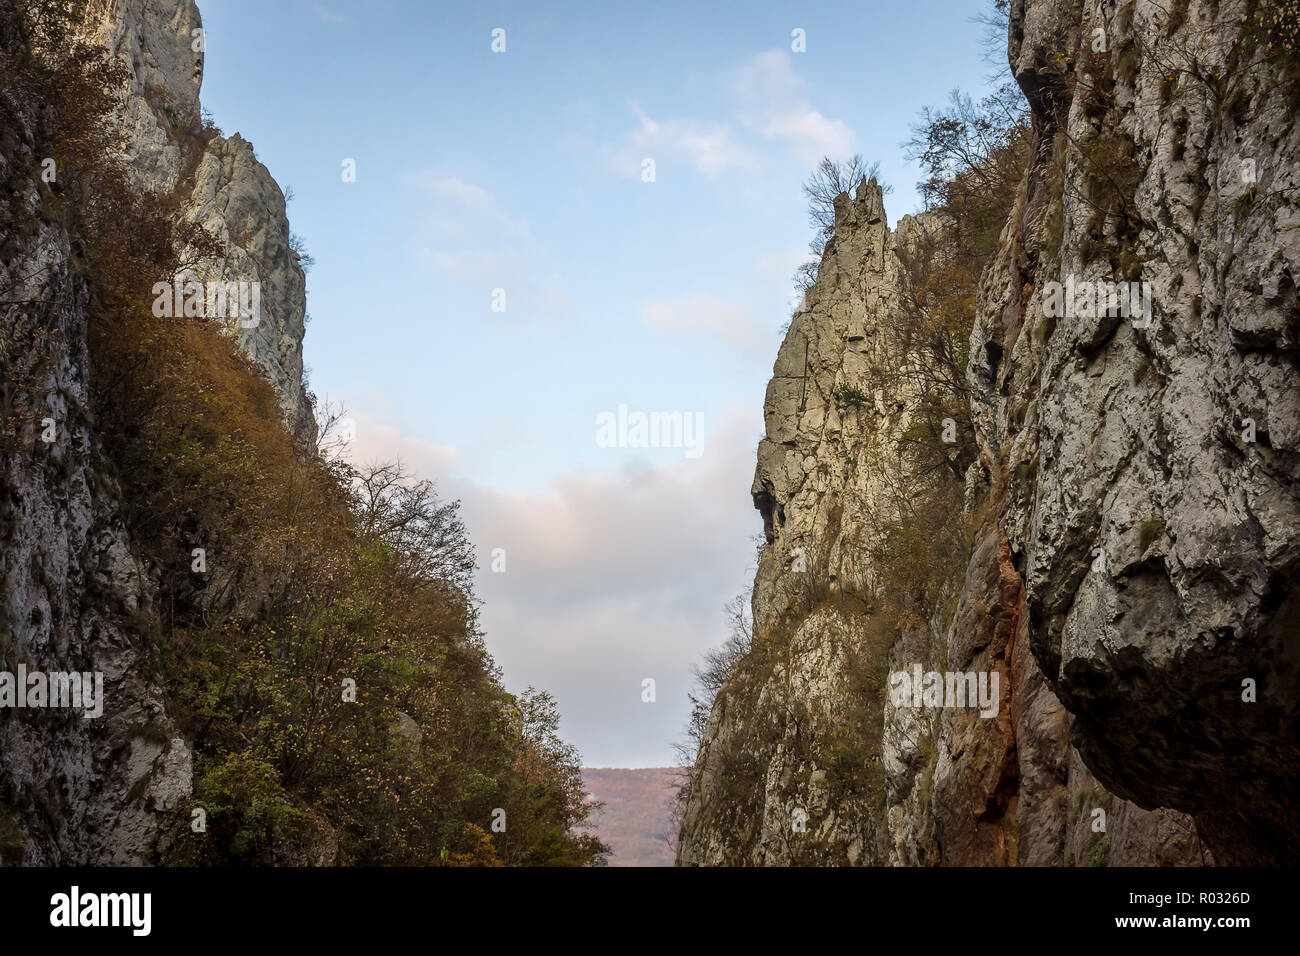 Amazing, contrasty view of beautiful, narrow canyon of Jerma river during autumn - Stock Image